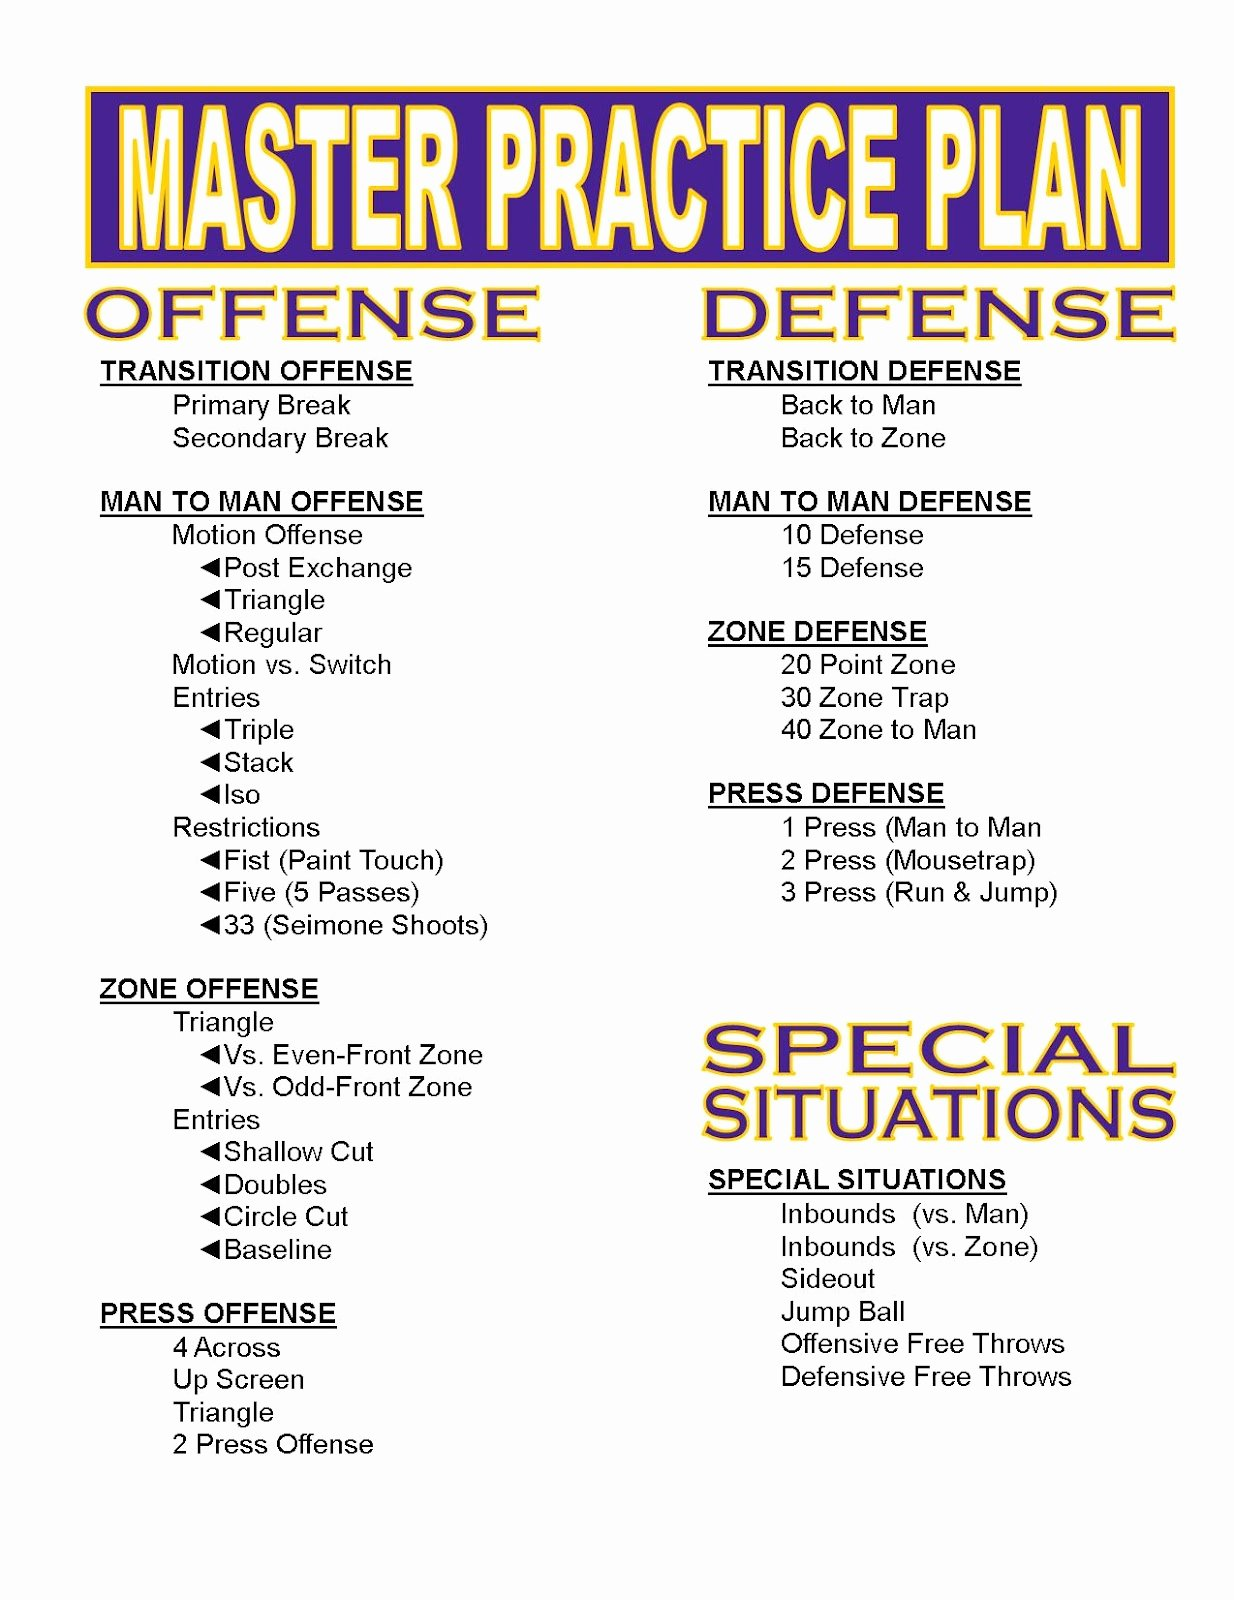 Football Practice Plan Template Inspirational Hoop thoughts Do You Have A Master Practice Plan